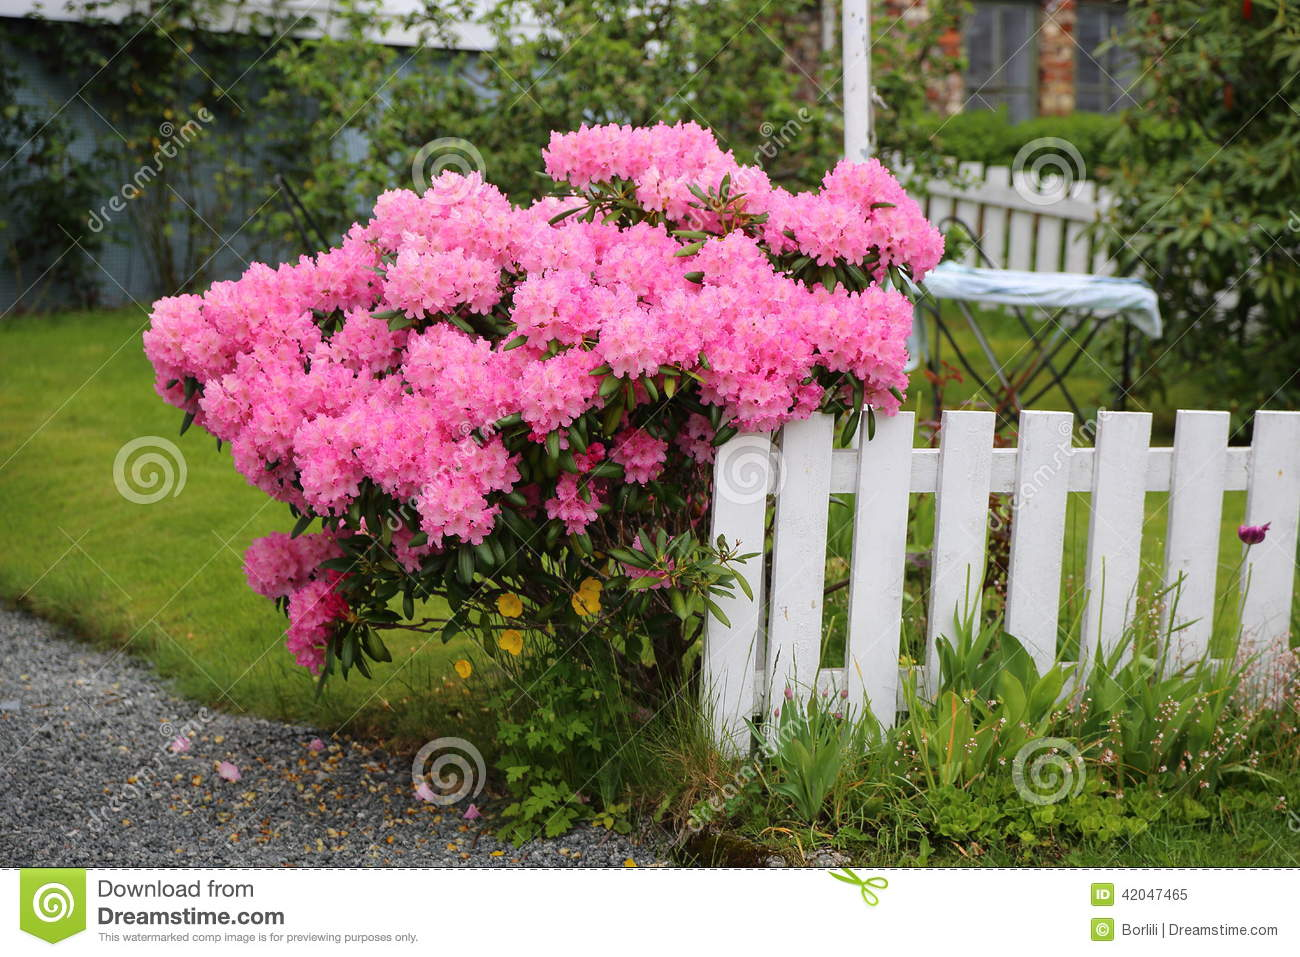 arbuste fleurissant rose photo stock - image: 42047465